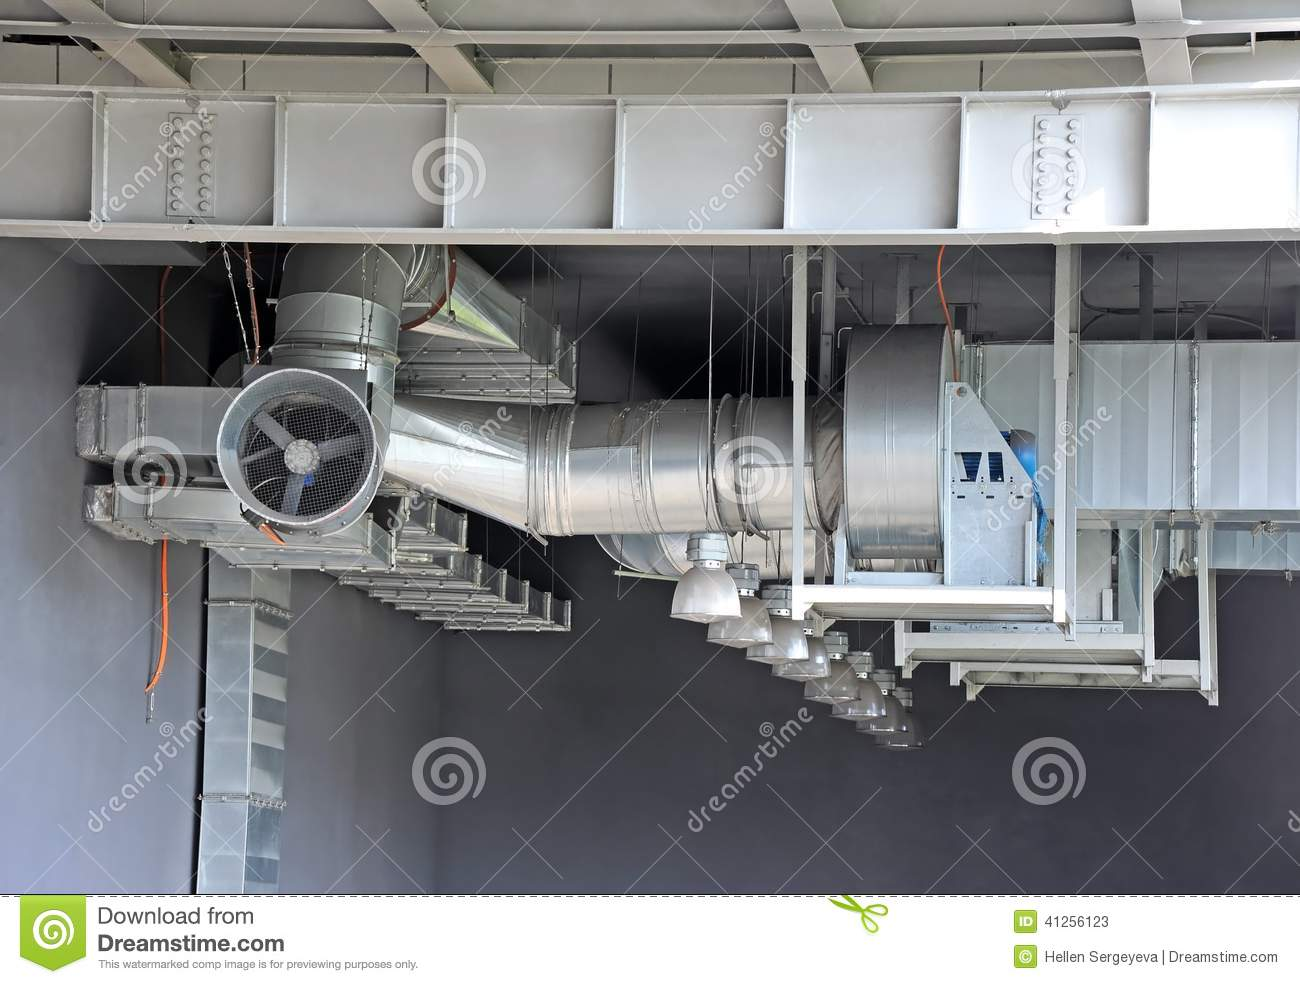 Air Ventilation System : Industrial ventilation system stock image of